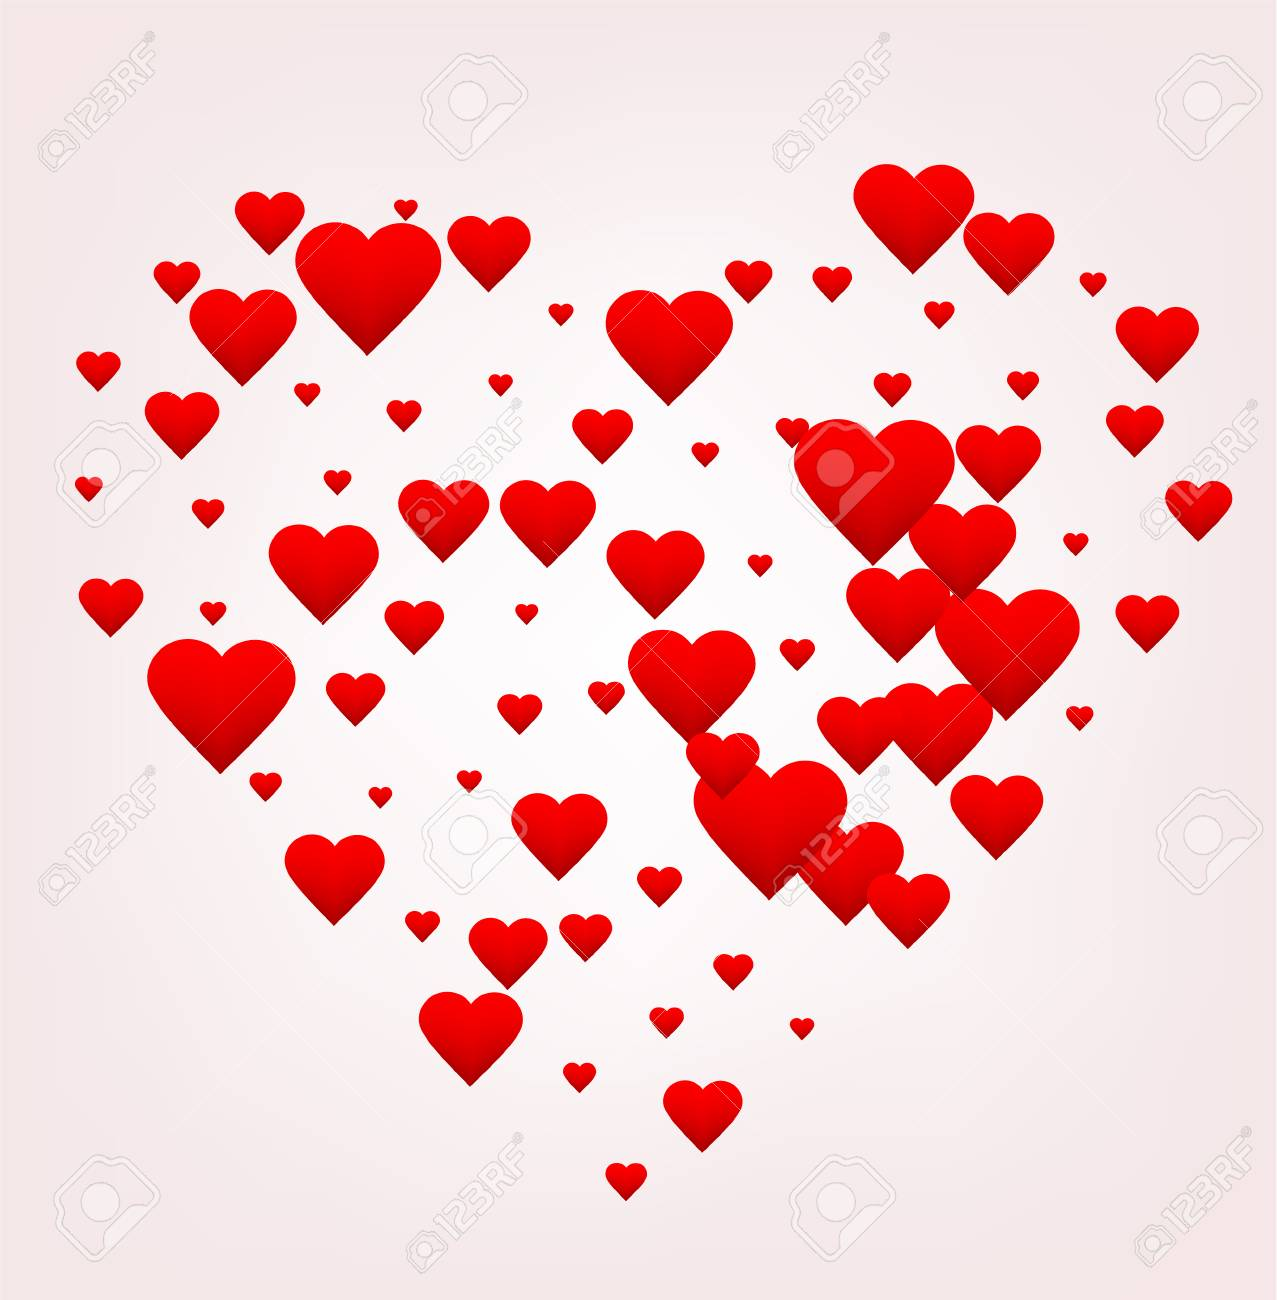 Happy Valentines Day Greeting Card Red Heart Shape Made Of Many